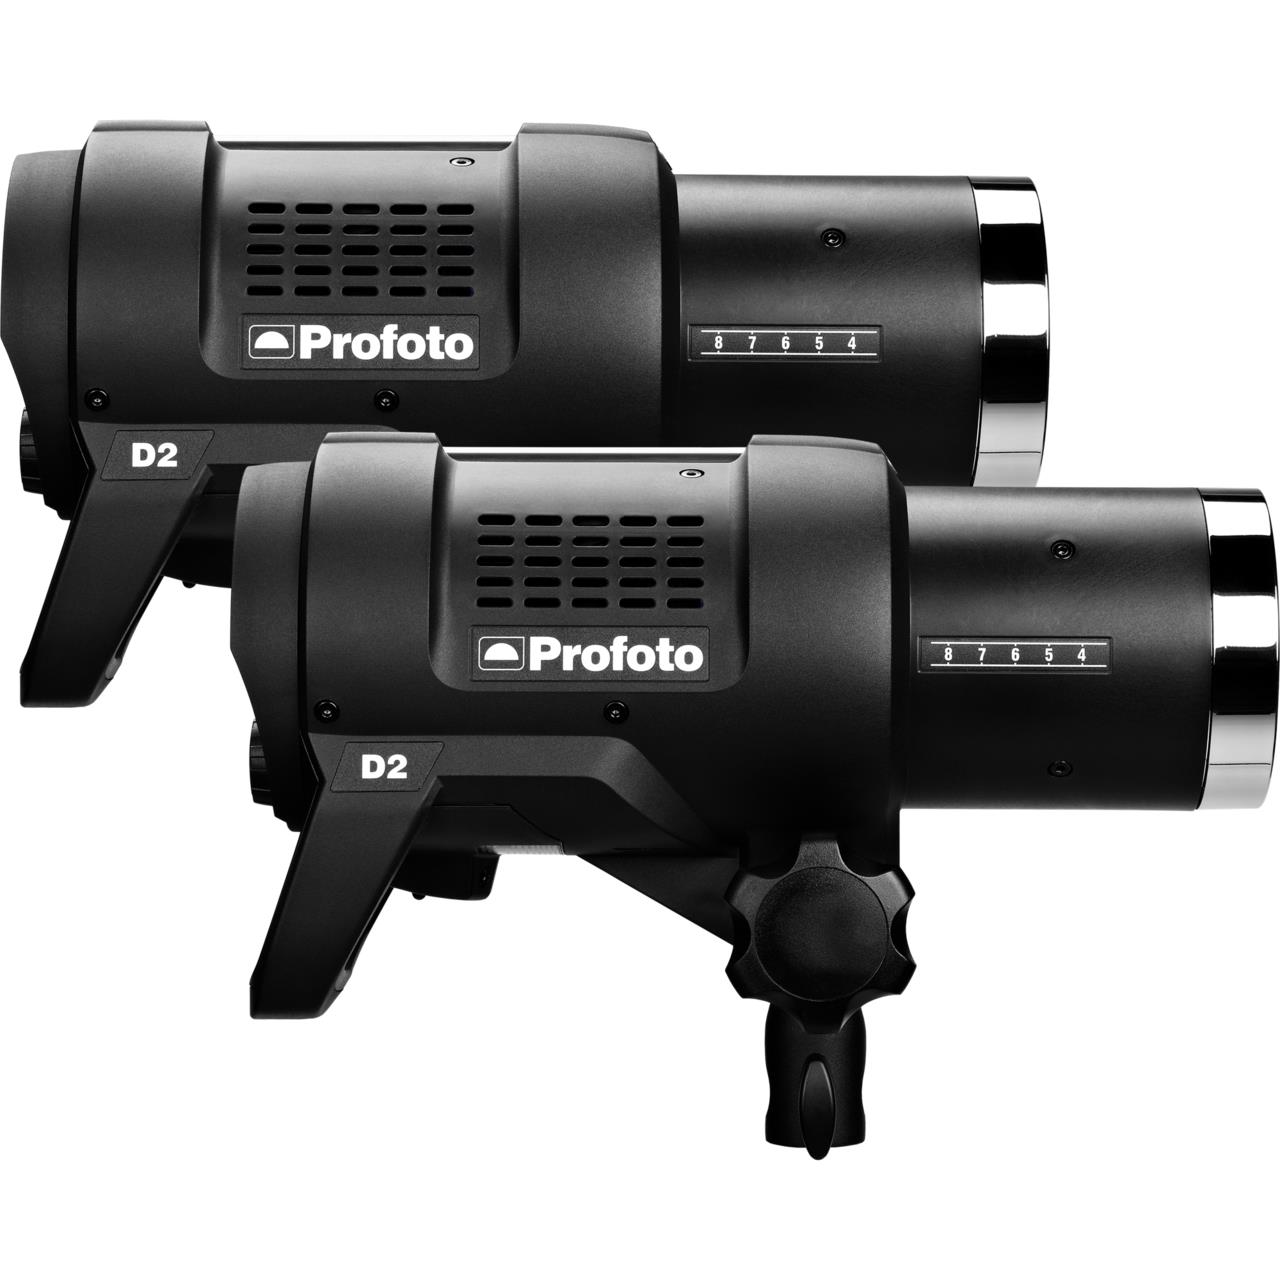 901016-901017_a_profoto-d2-500-1000-airttl-profile-right-double_productimage